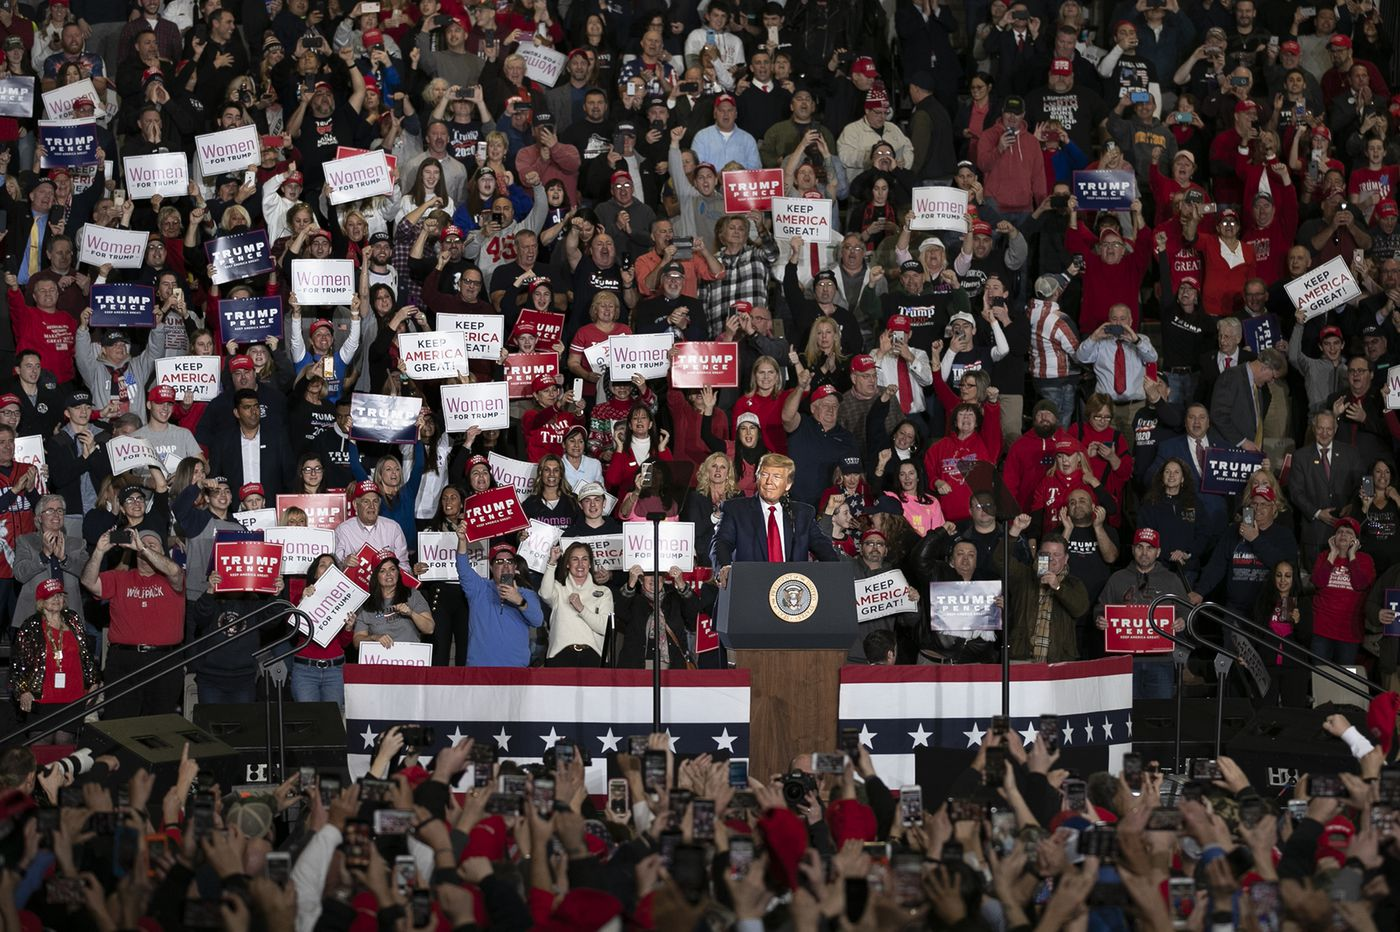 Costly presidential campaign rallies leave cities wondering who's paying the bill